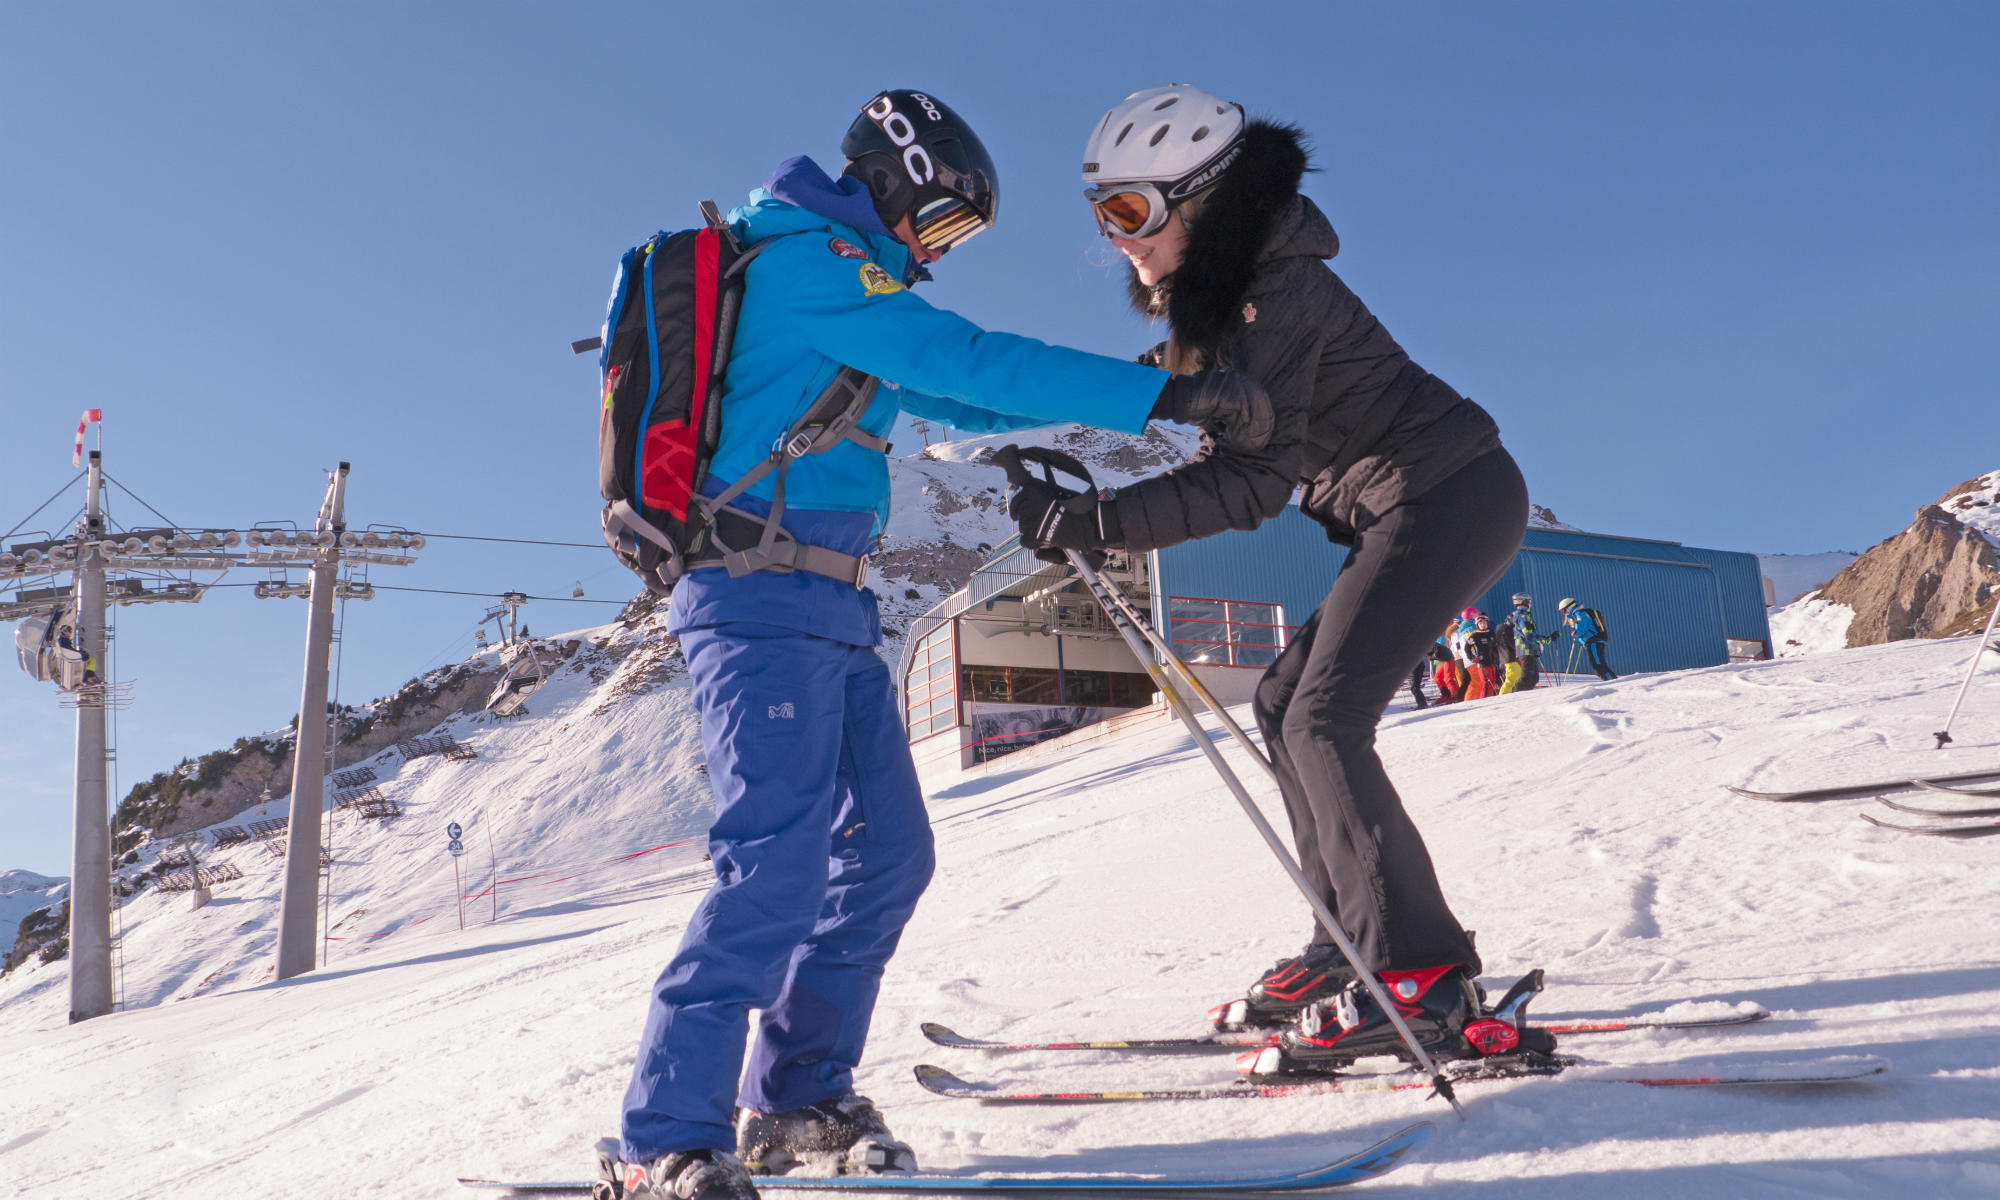 A skiing instructor helping a beginner find the right position.